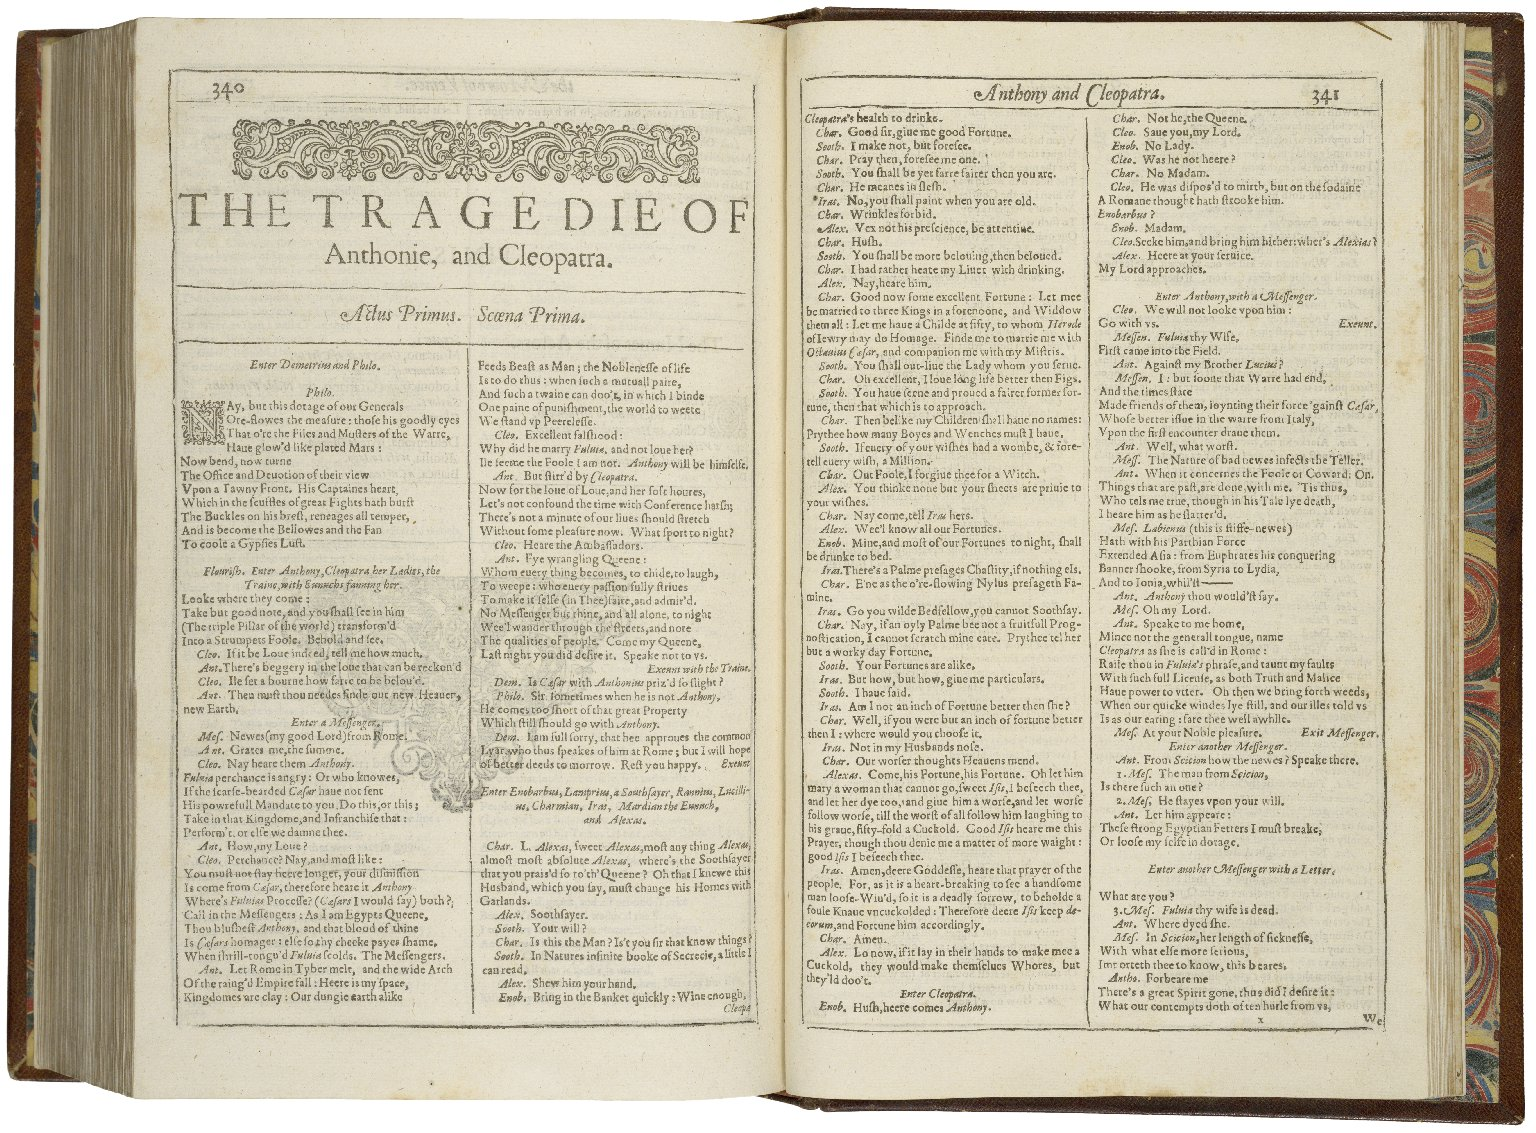 First pages of the First Folio edition of Antony and Cleopatra